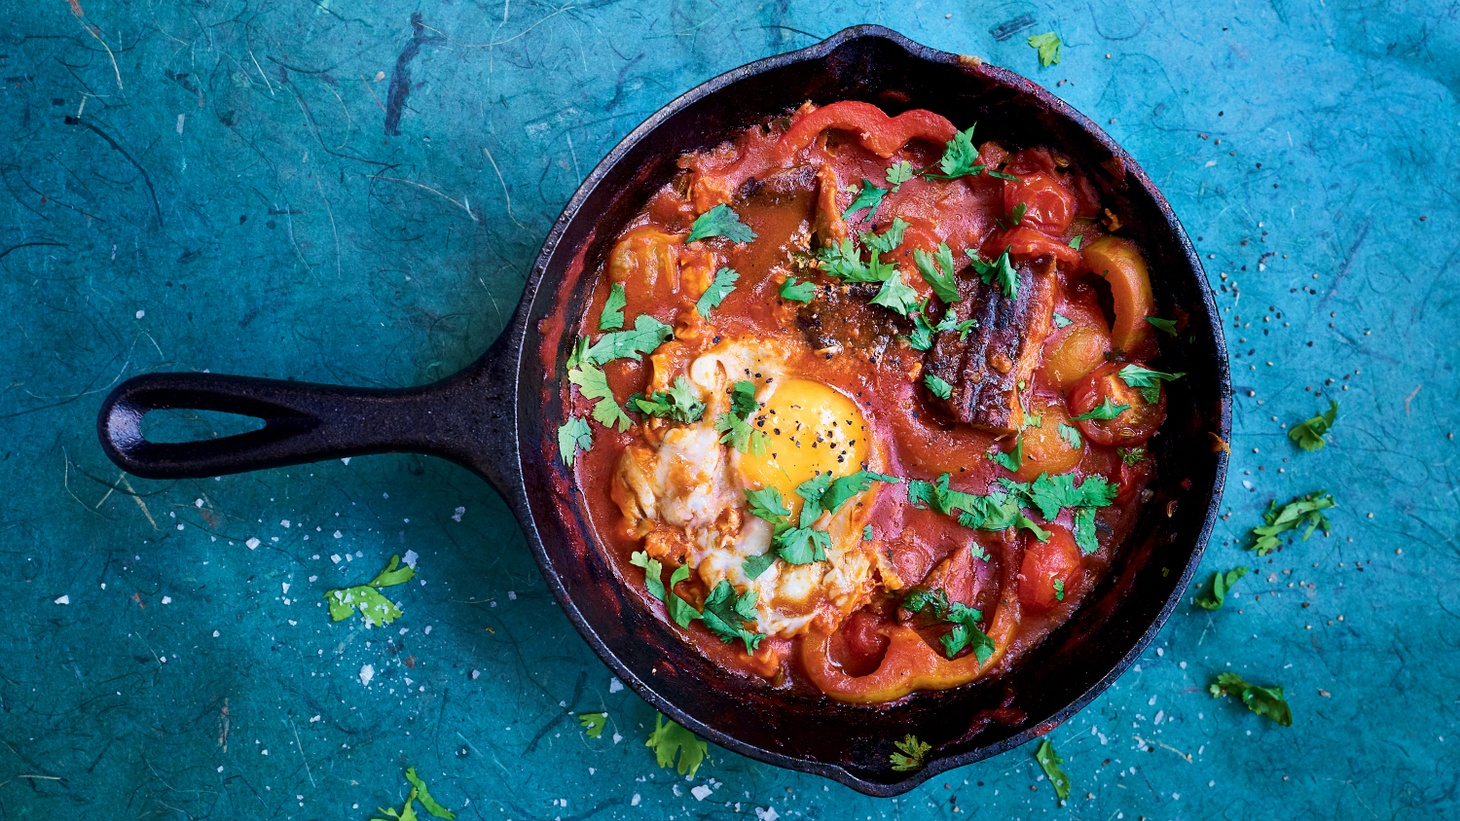 Smoked Herring Shakshuka is the perfect tinned fish breakfast or lunch, according to Bart van Olphen.